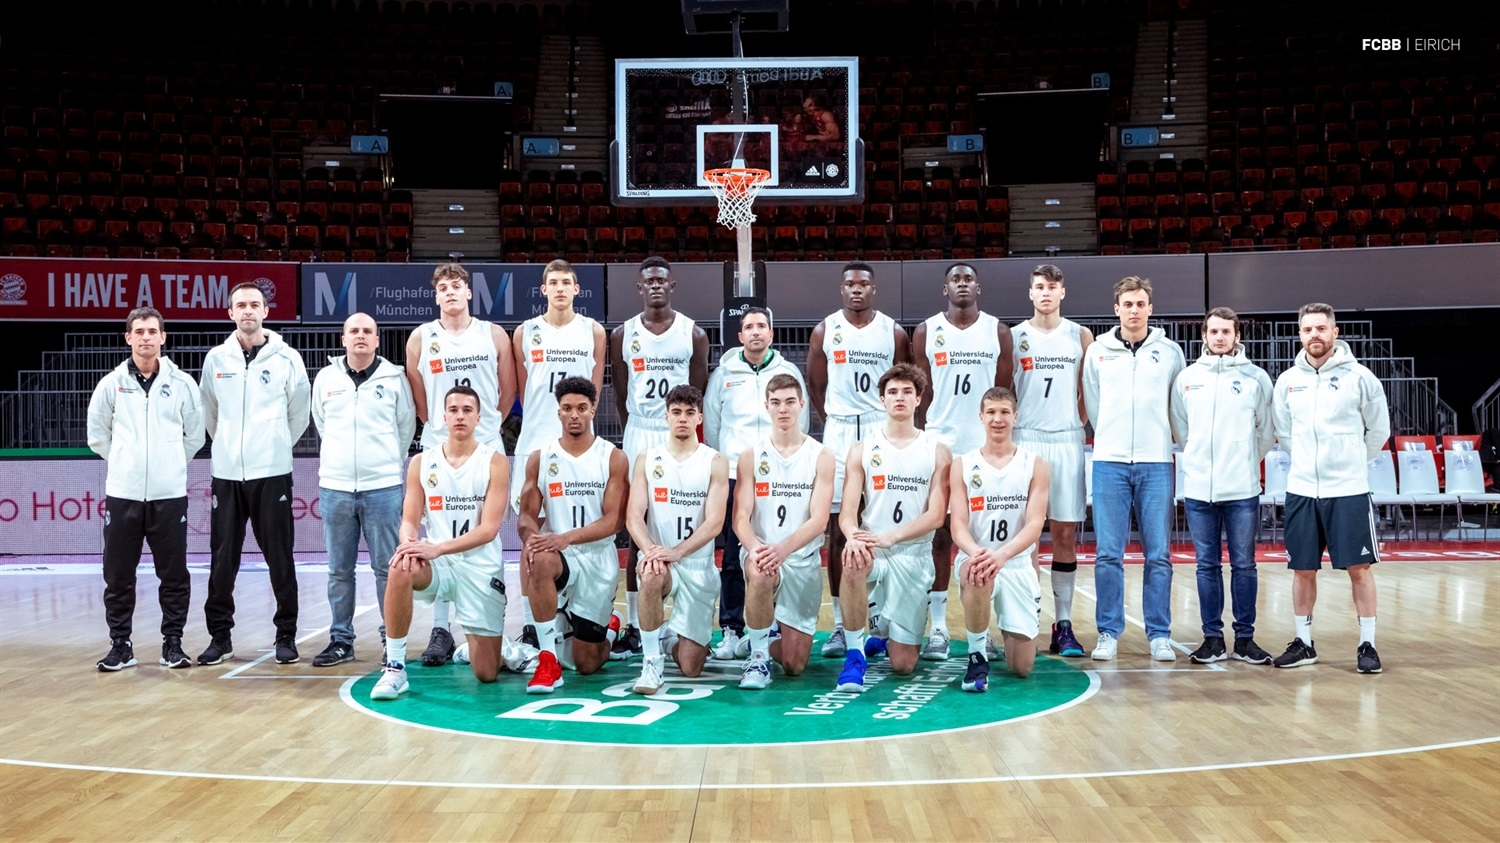 U18 Real Madrid - ANGT Munich 2019 (photo FCBB - Eirich) JT18